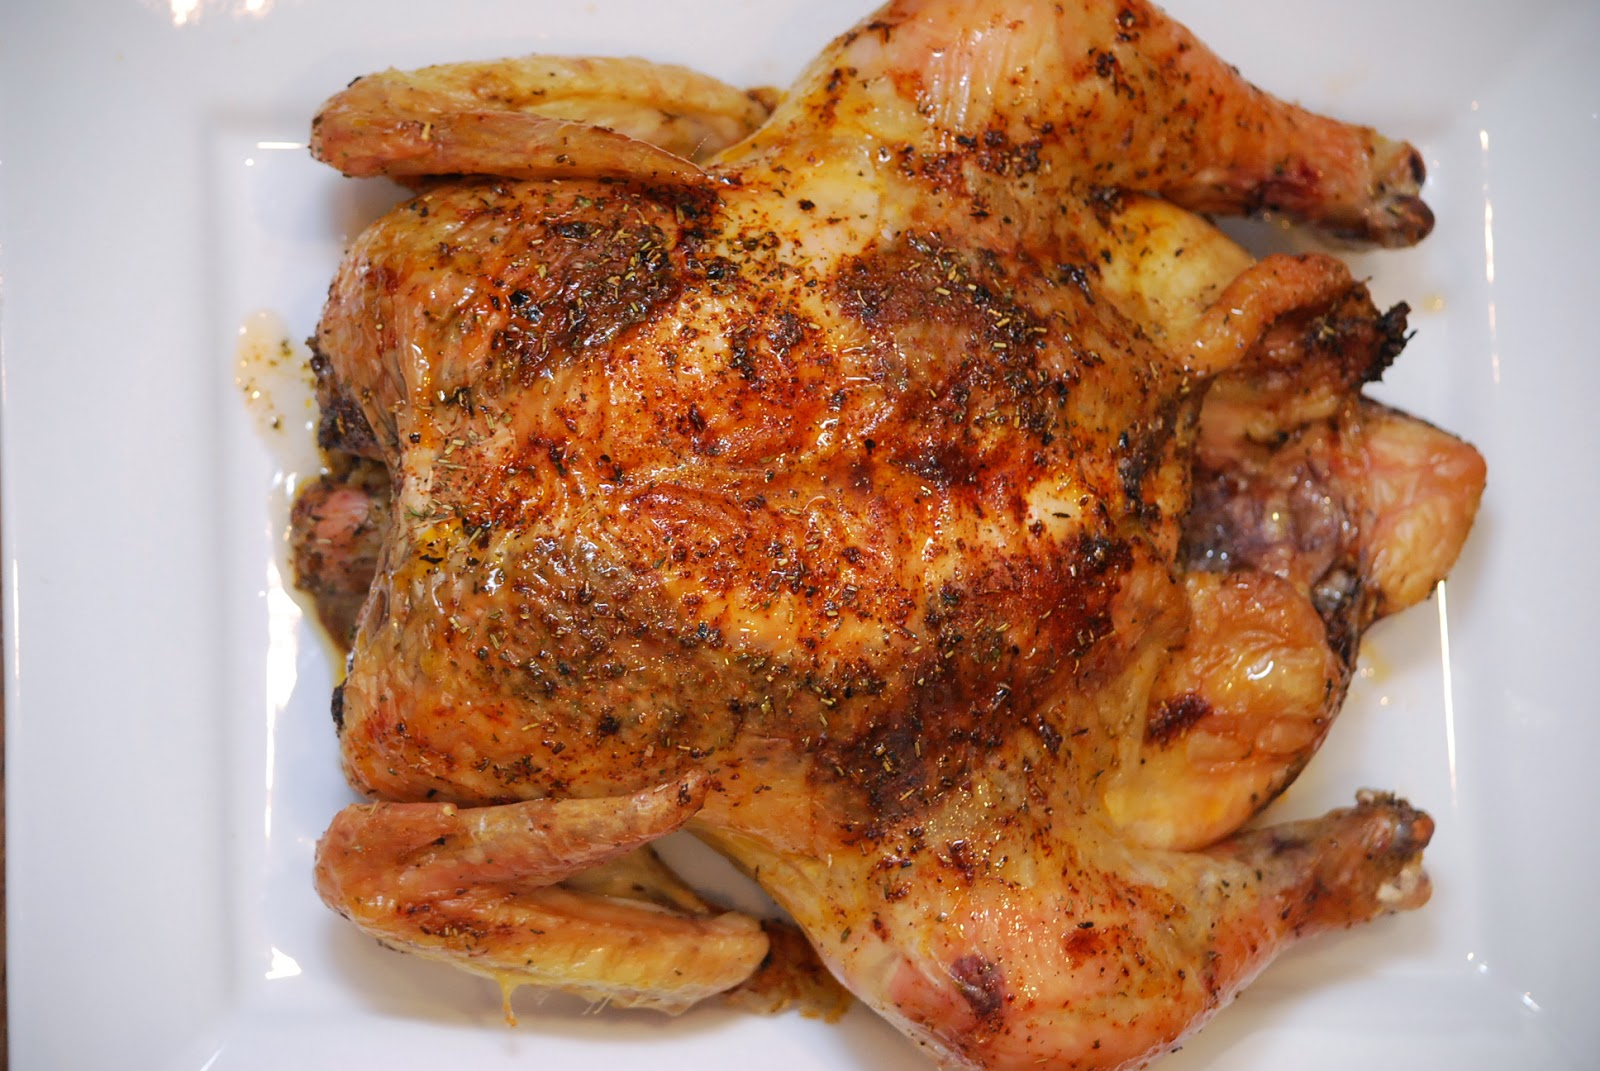 My story in recipes: Herb Roasted Chicken